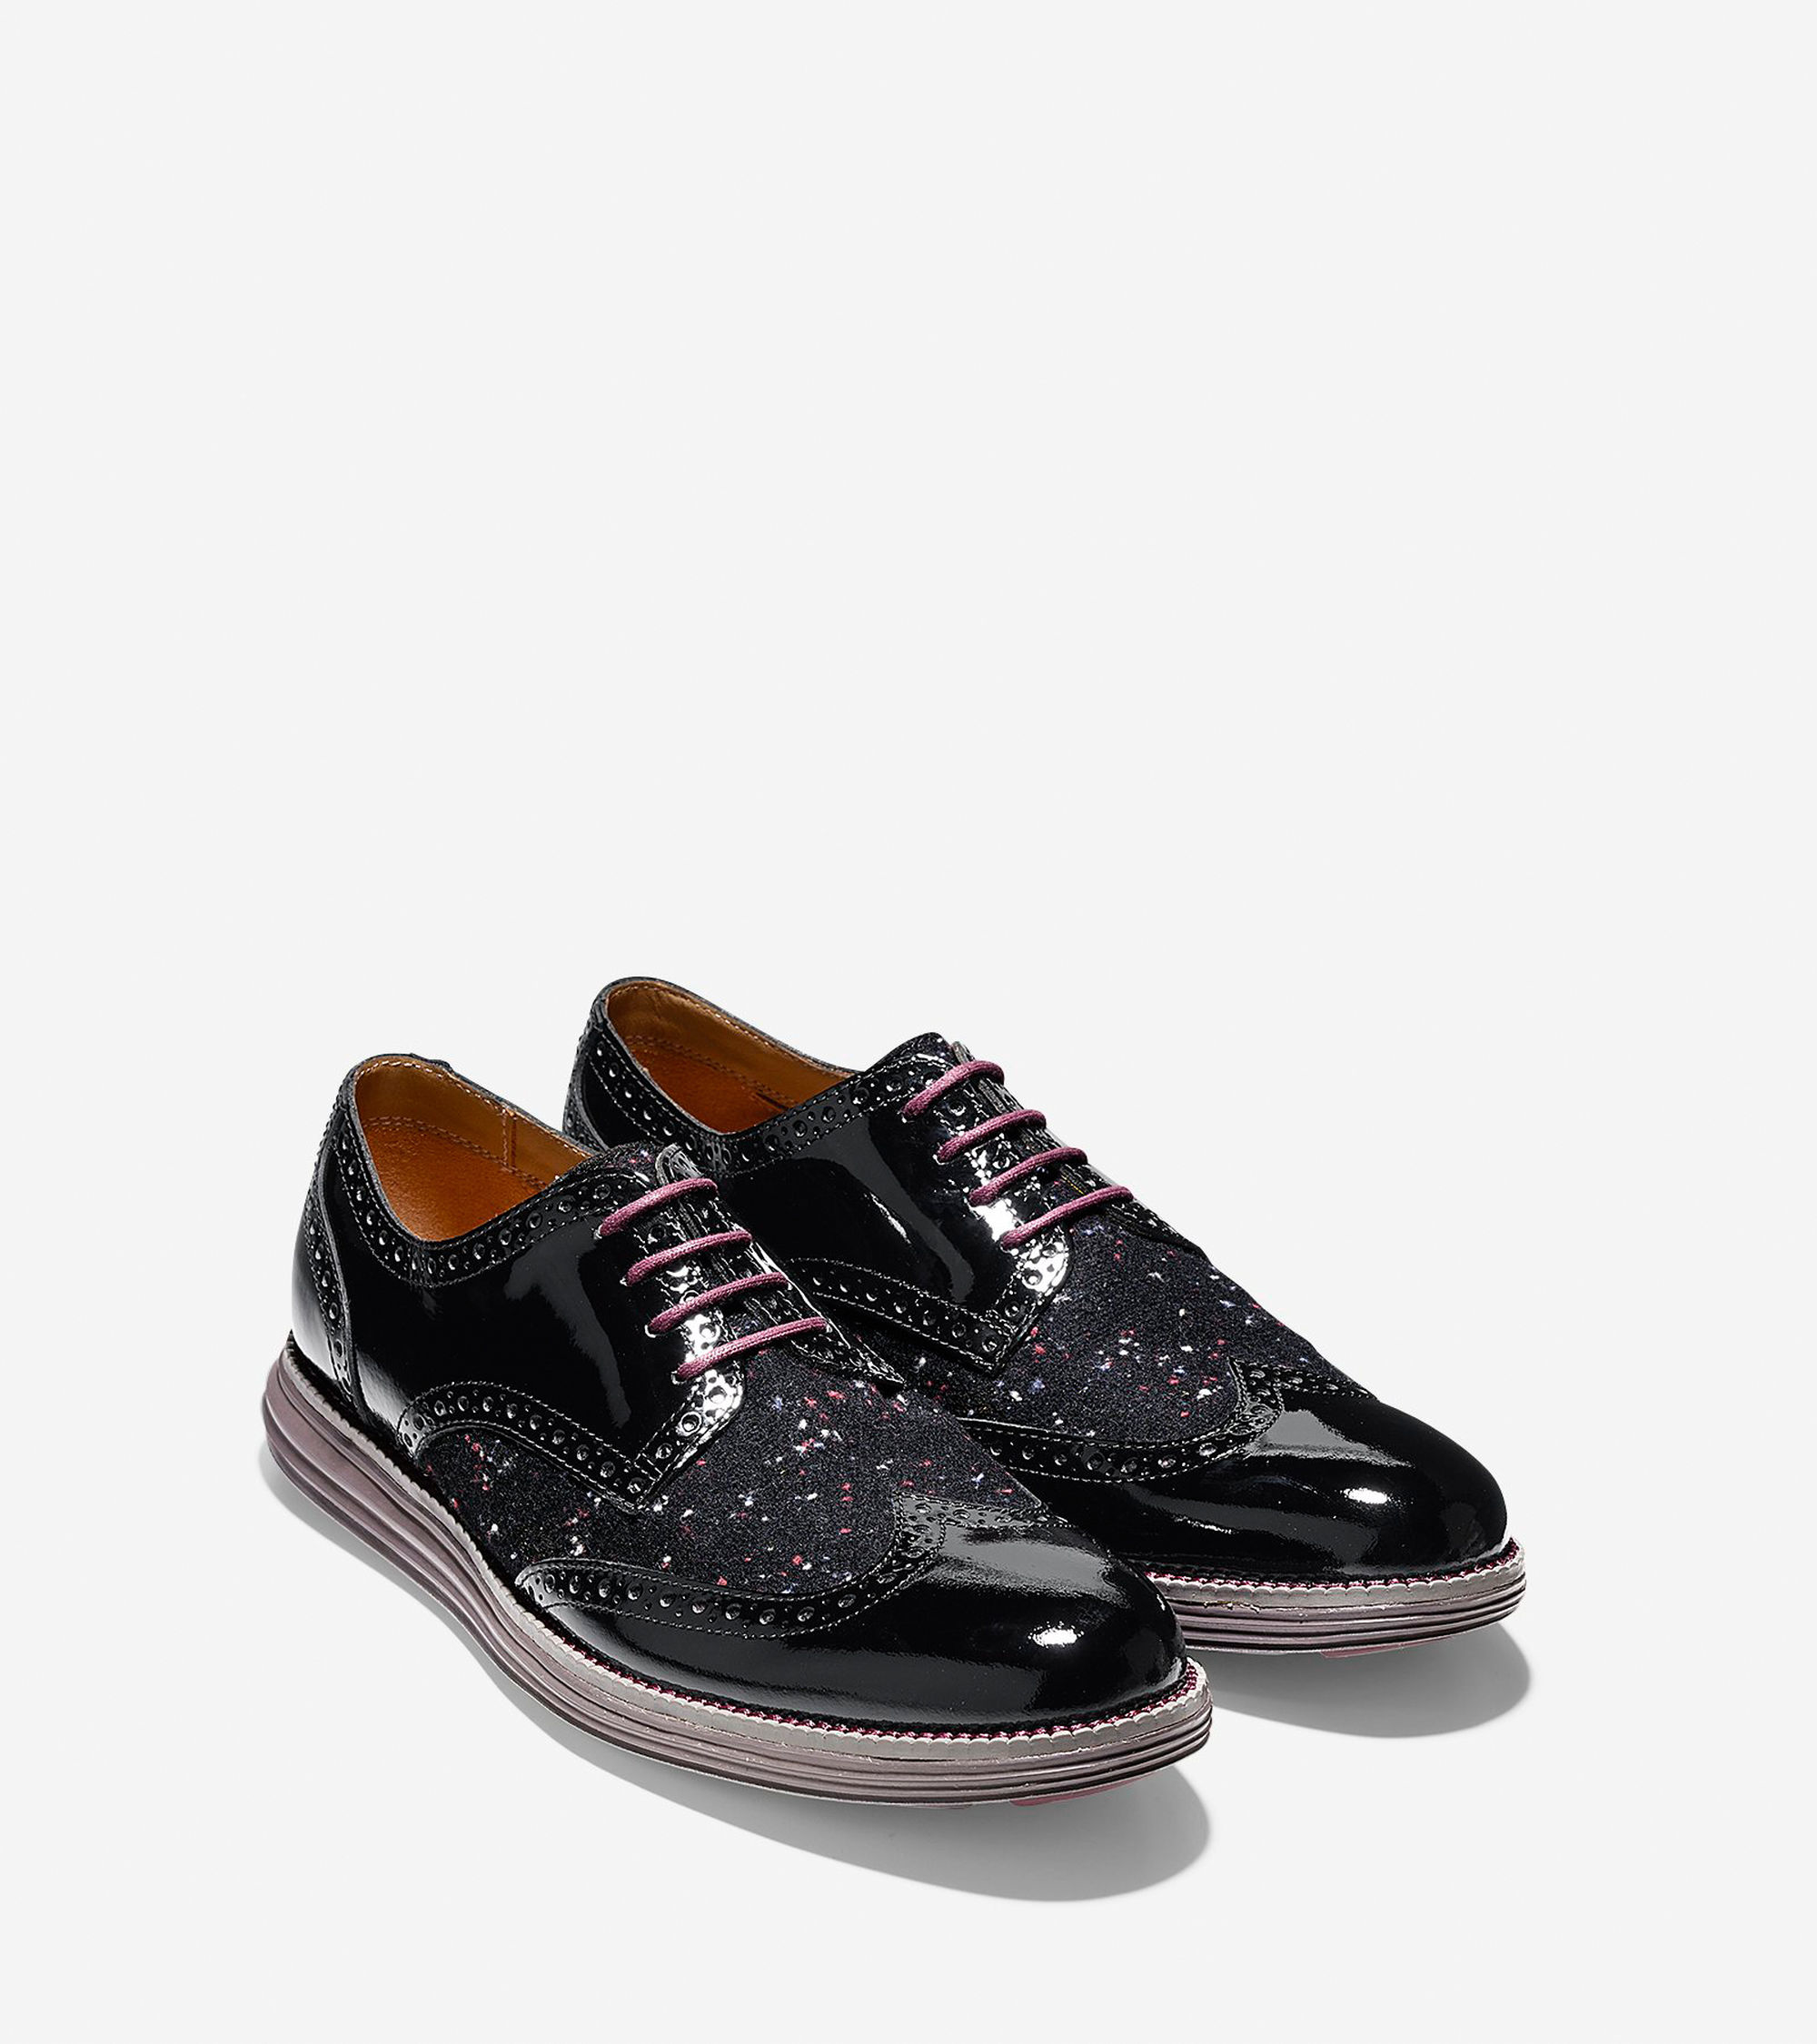 Black Cole Haan Lunargrand January 2017